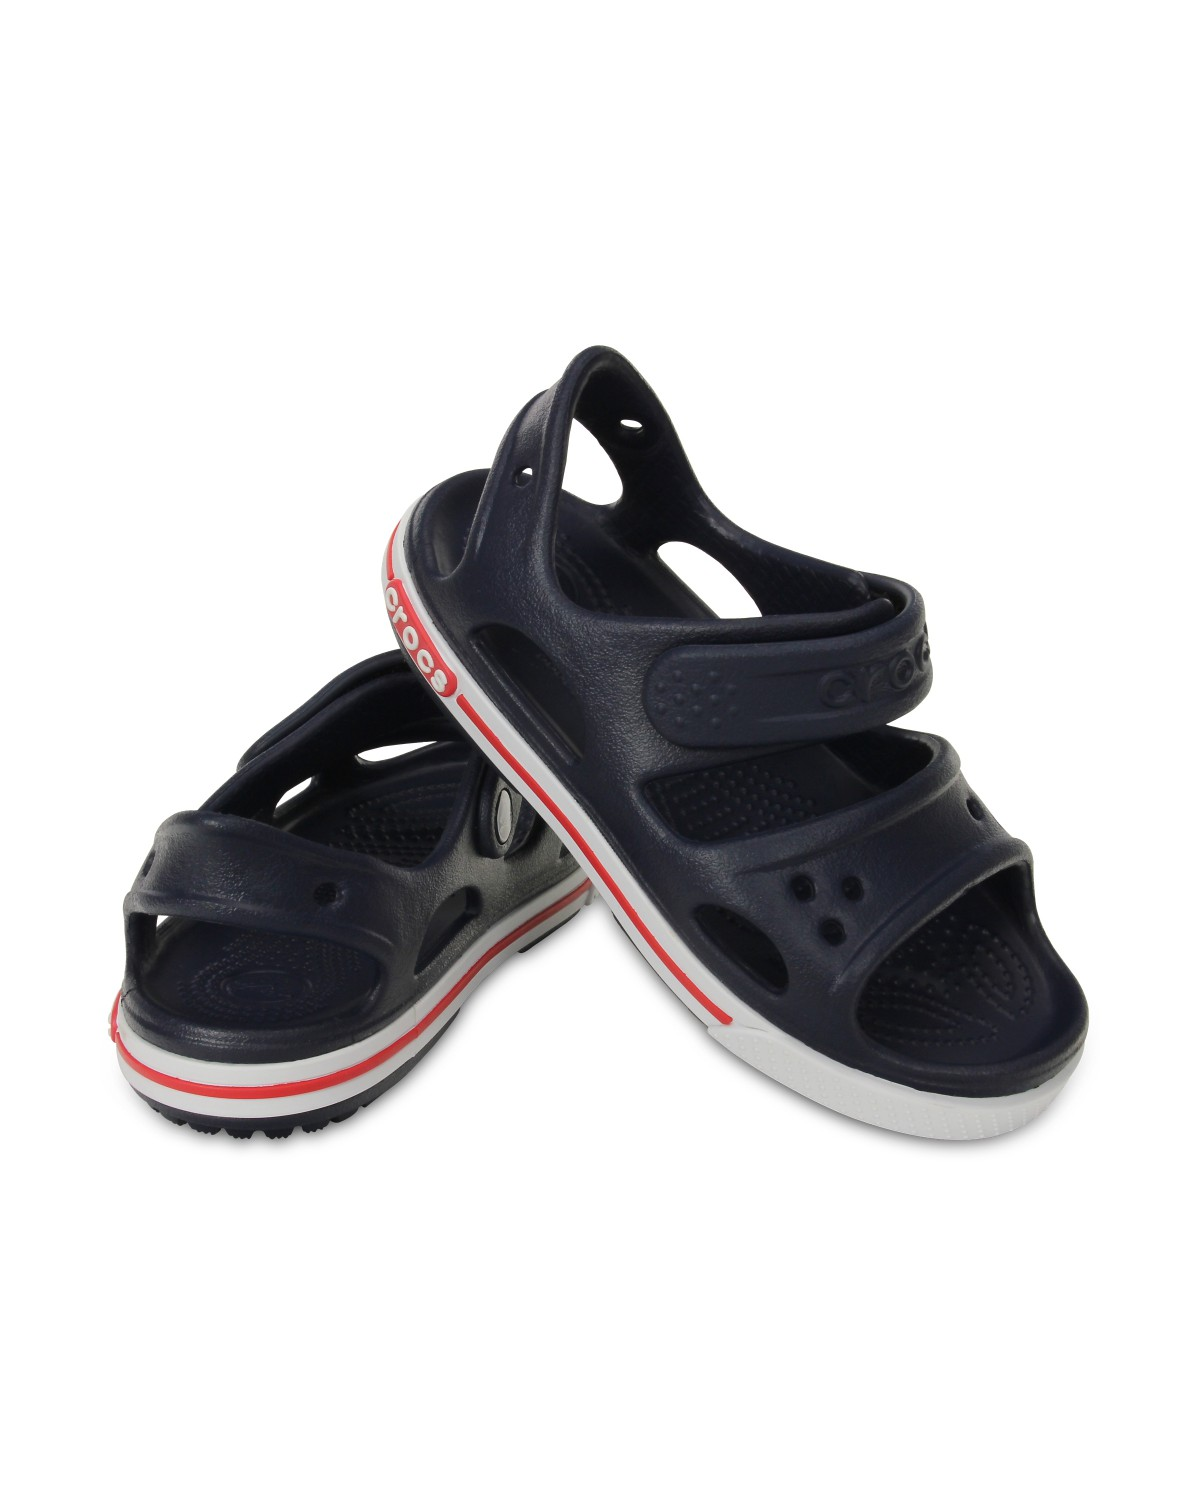 CROCS Sandal Kids 14854 462